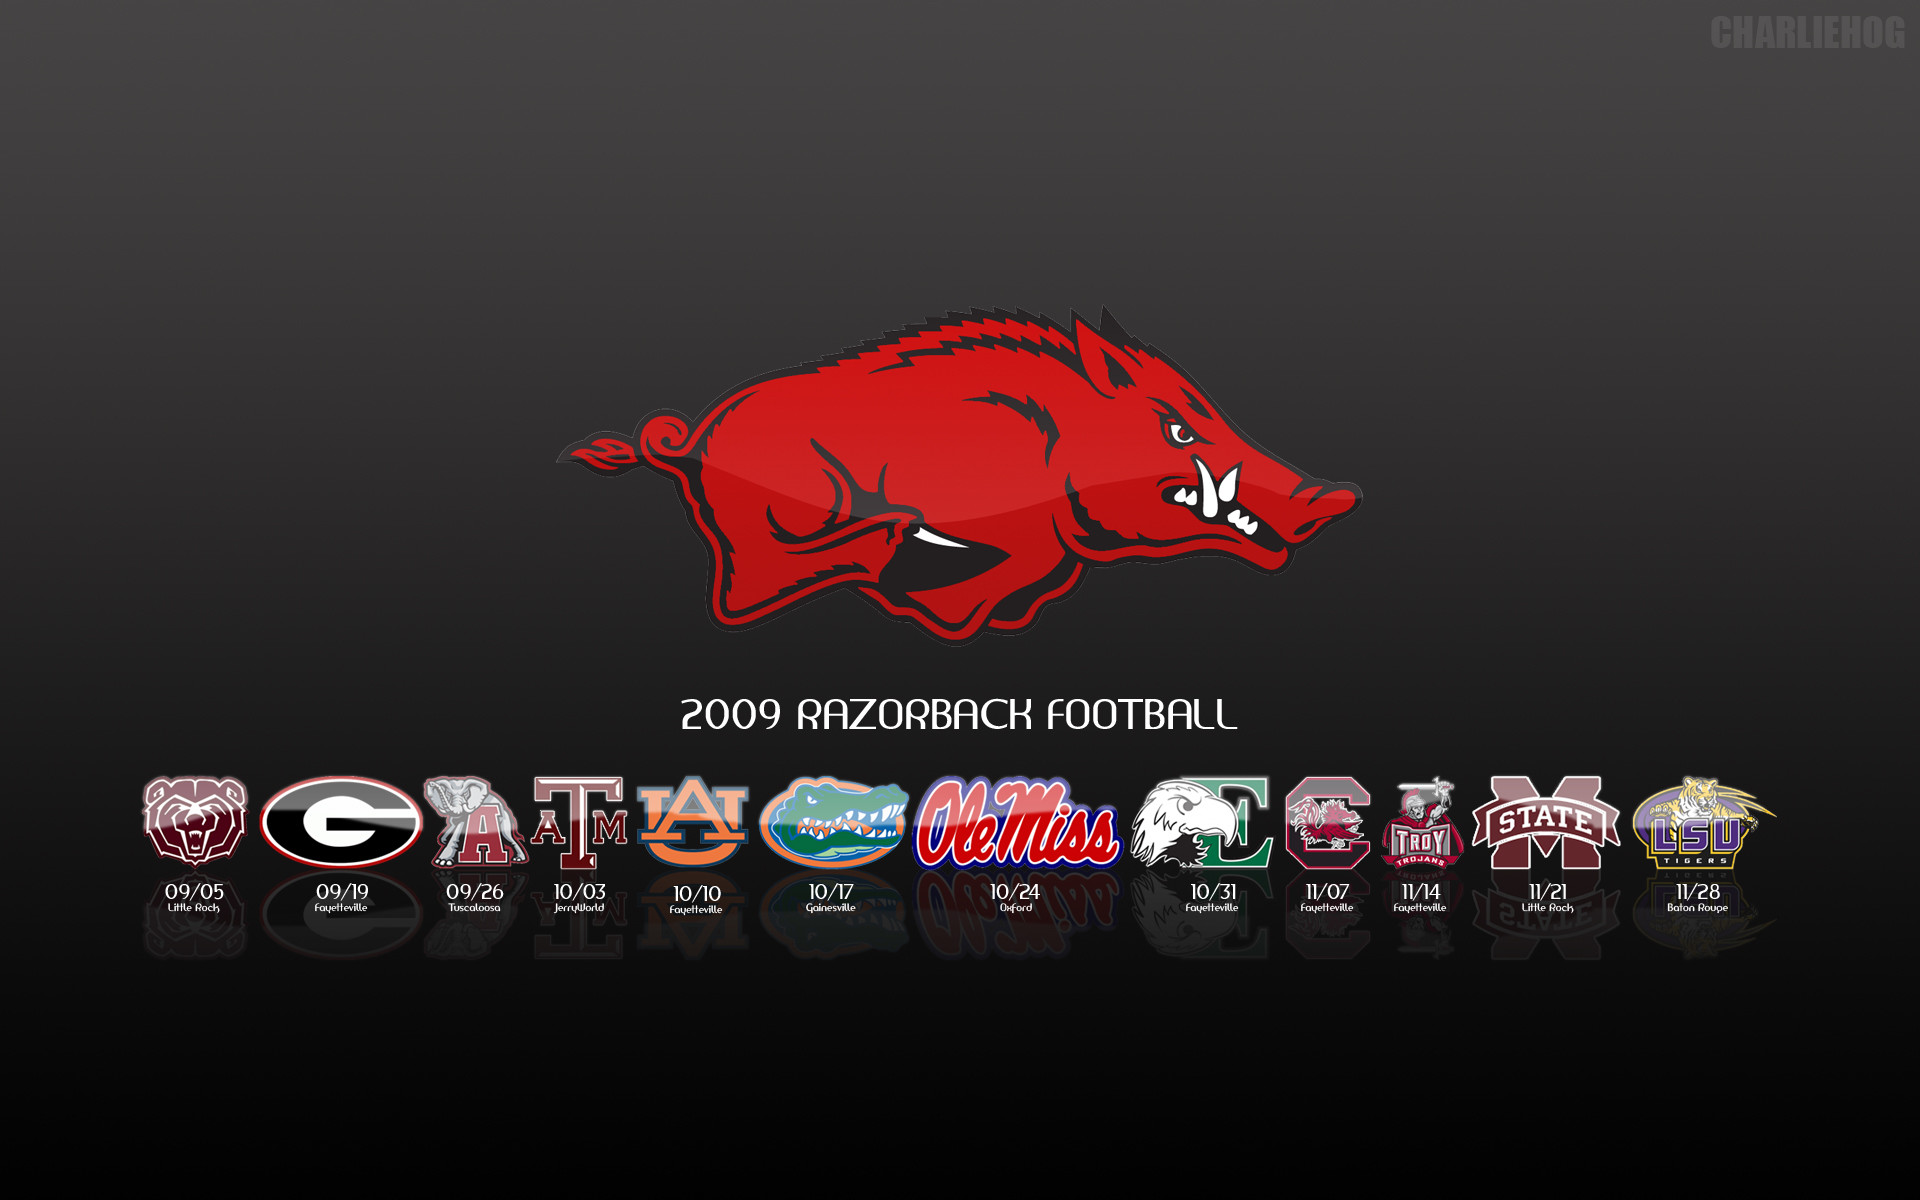 Arkansas Razorback Wallpaper And Screensavers 68 Images HD Wallpapers Download Free Images Wallpaper [1000image.com]